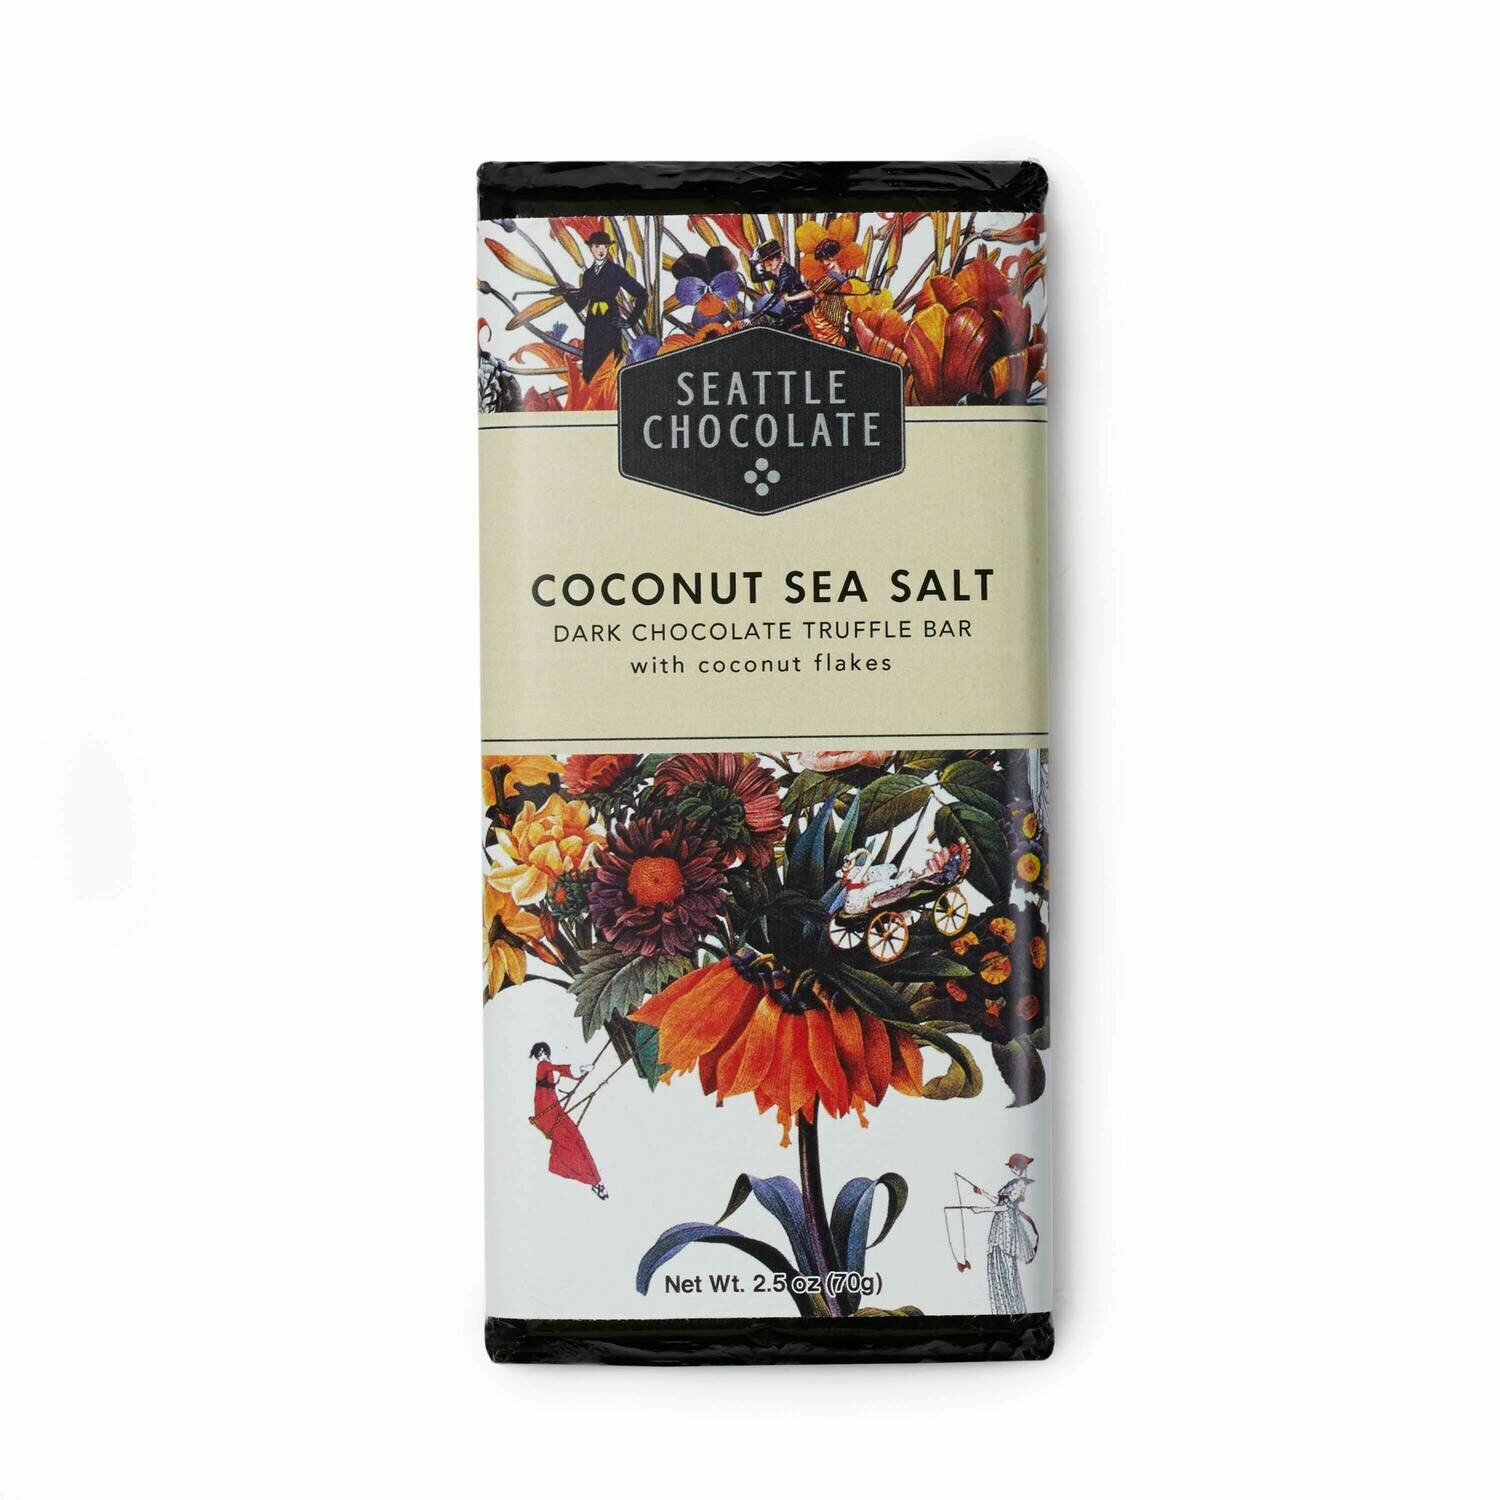 Seattle Chocolates Coconut Sea Salt Dark Chocolate Truffle Bar